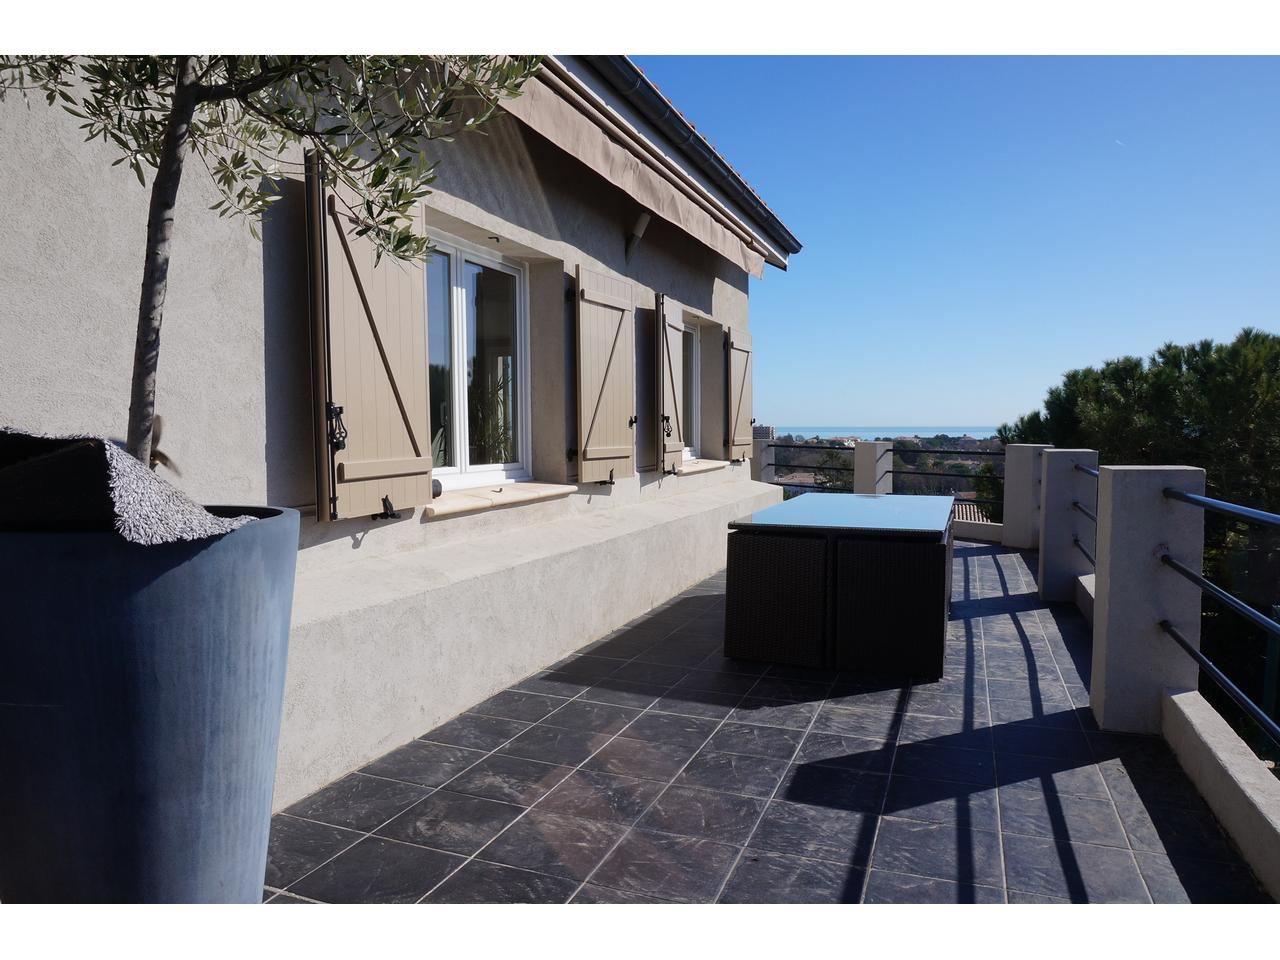 Immobilier nice vue mer appartement antibes antibes for Immobilier atypique nice